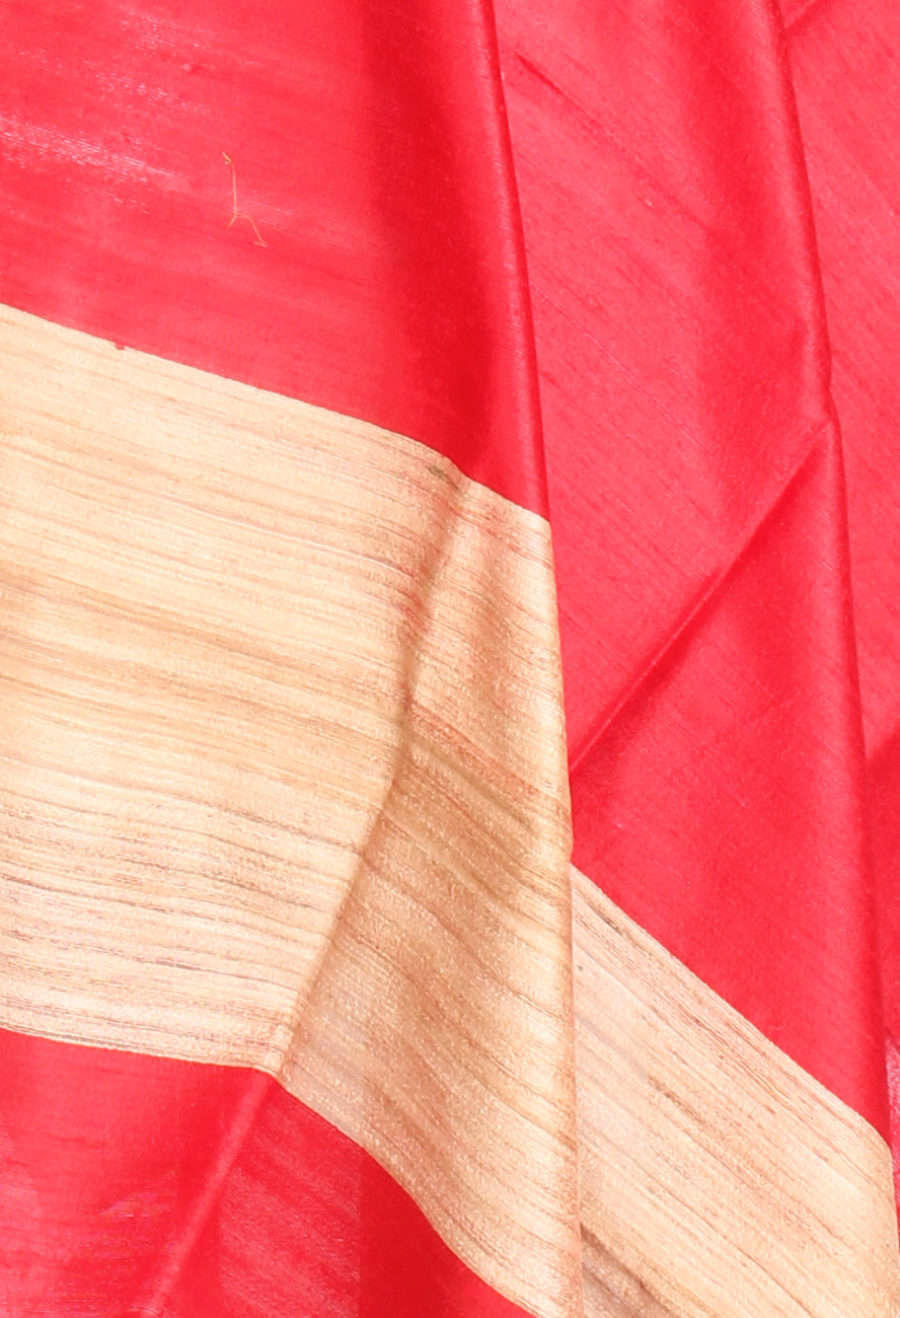 Red Tussar Dupion Raw silk Solid woven dupatta (2) Close up